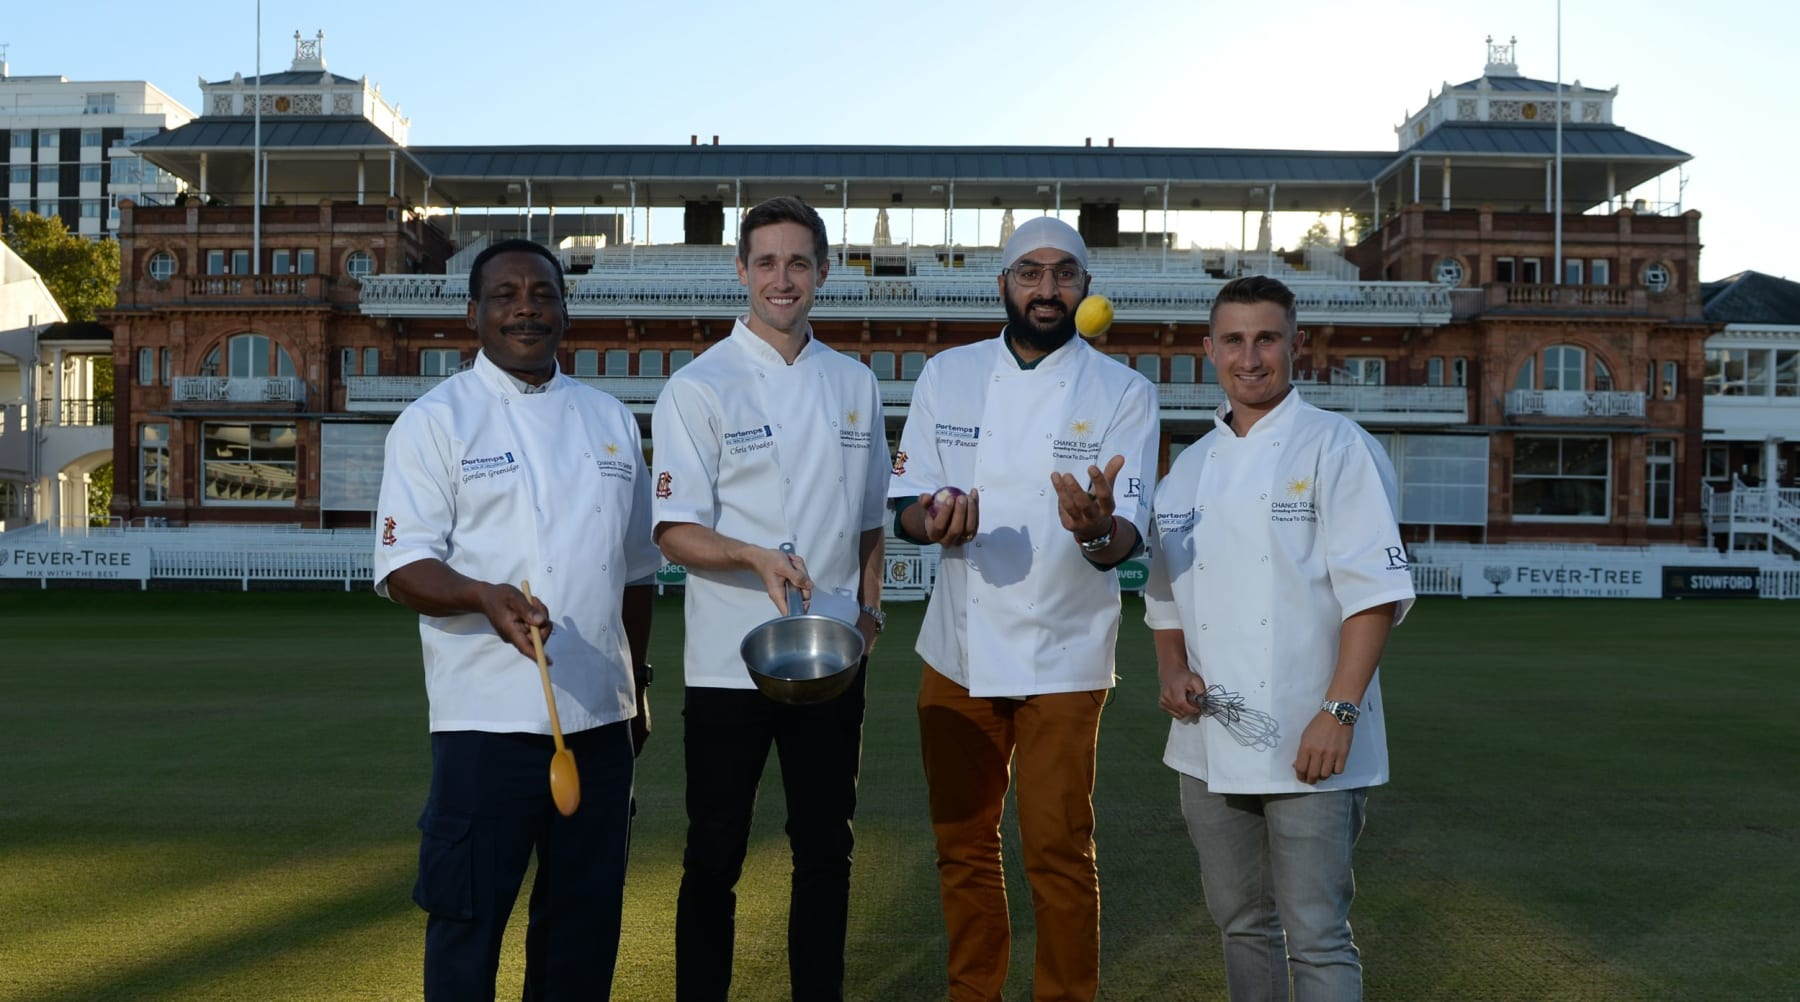 More Lord's glory as Greenidge takes Chance to Dine title